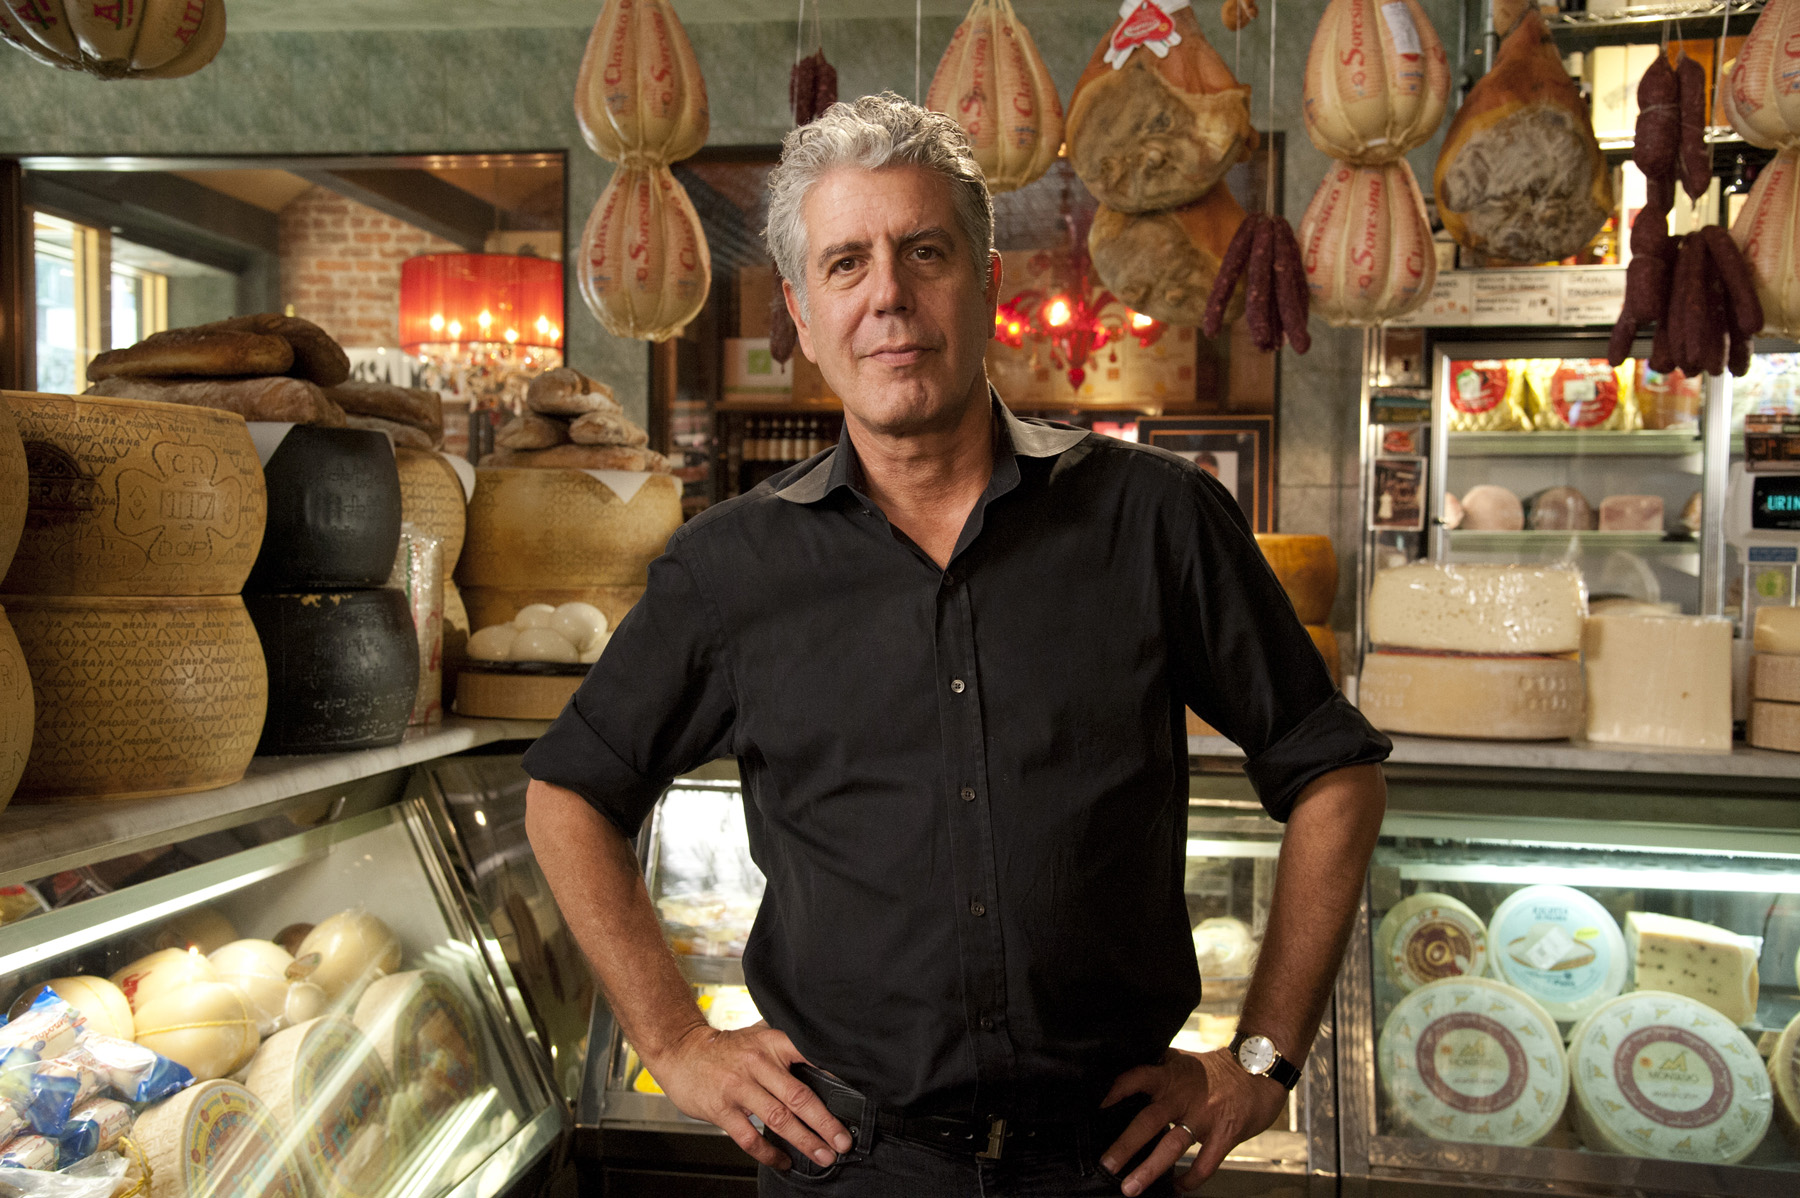 """Anthony Bourdain is seen in a photo from the production of """"Mob Week on AMC"""" in New York, NY on June 22, 2012. David E. Steele/AMC"""